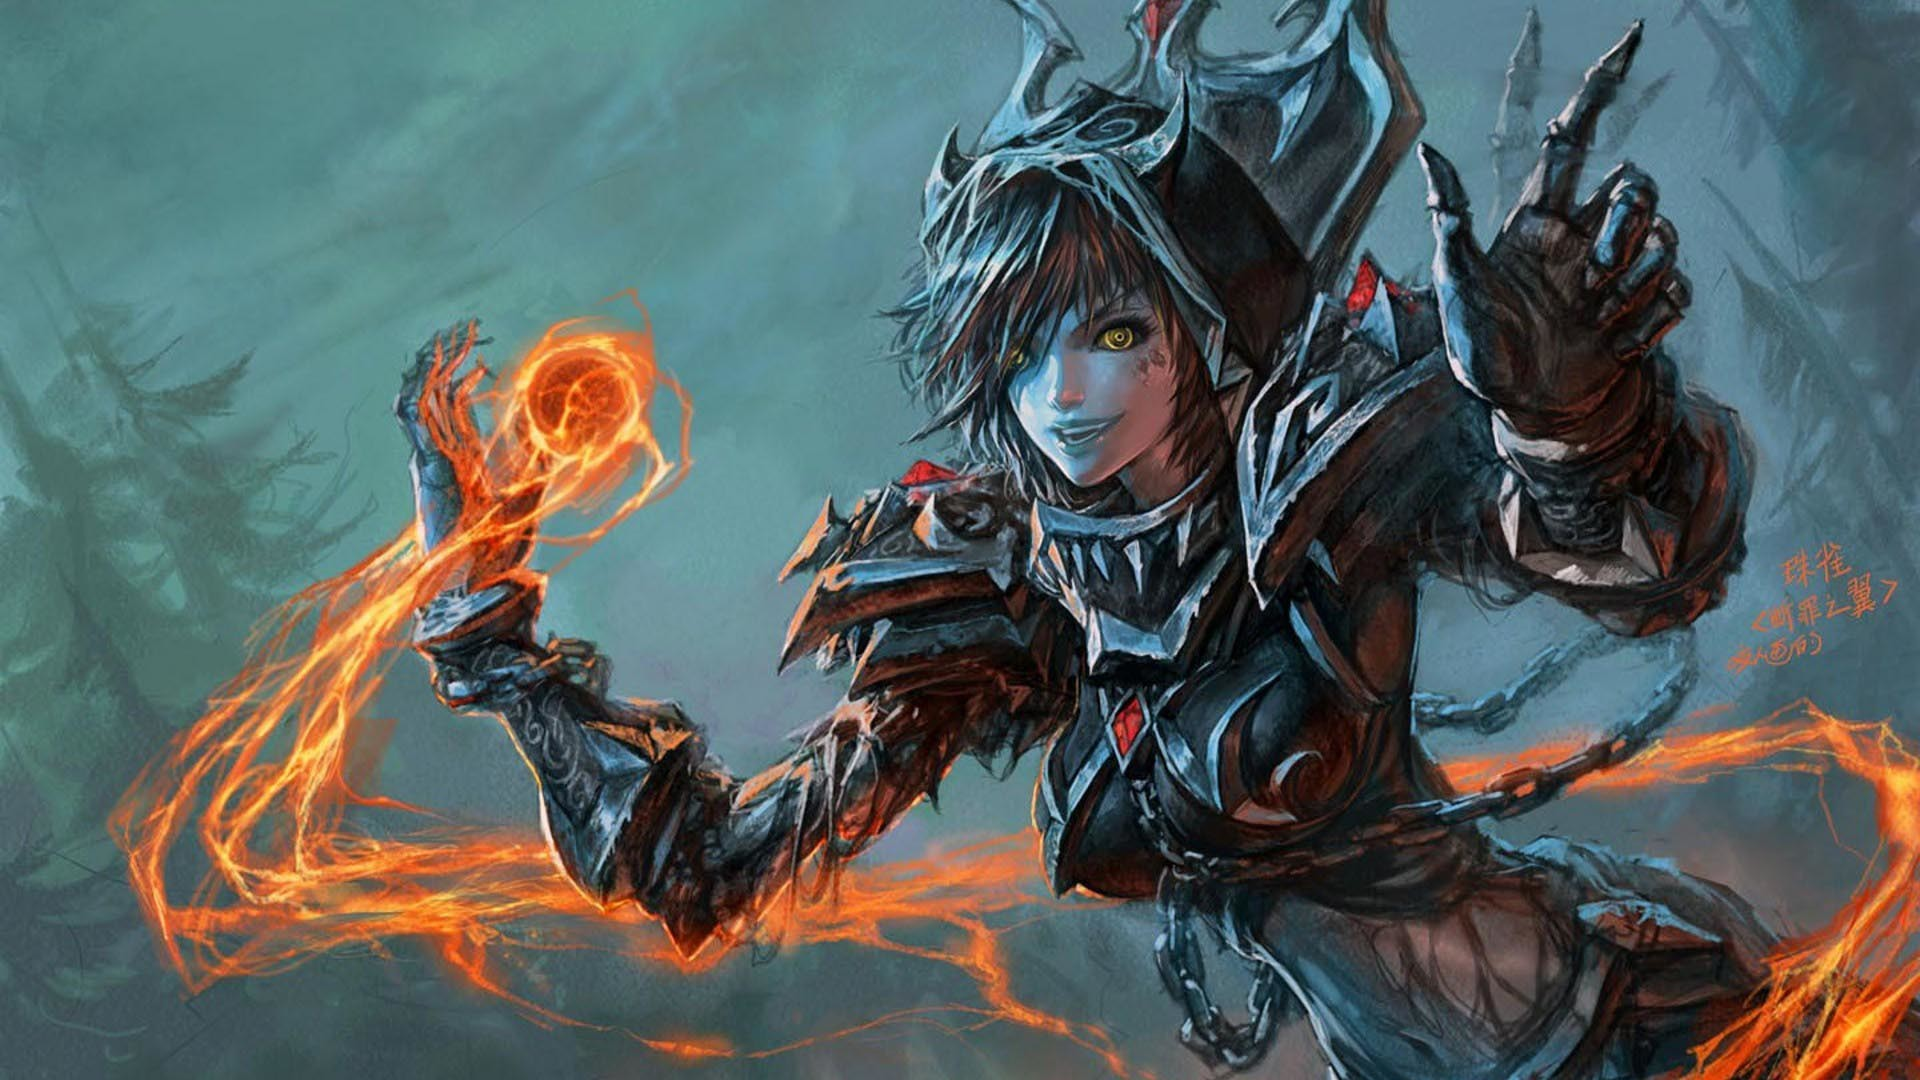 World Of Warcraft Wallpaper 1920x1080: Undead Wallpaper WoW (65+ Images